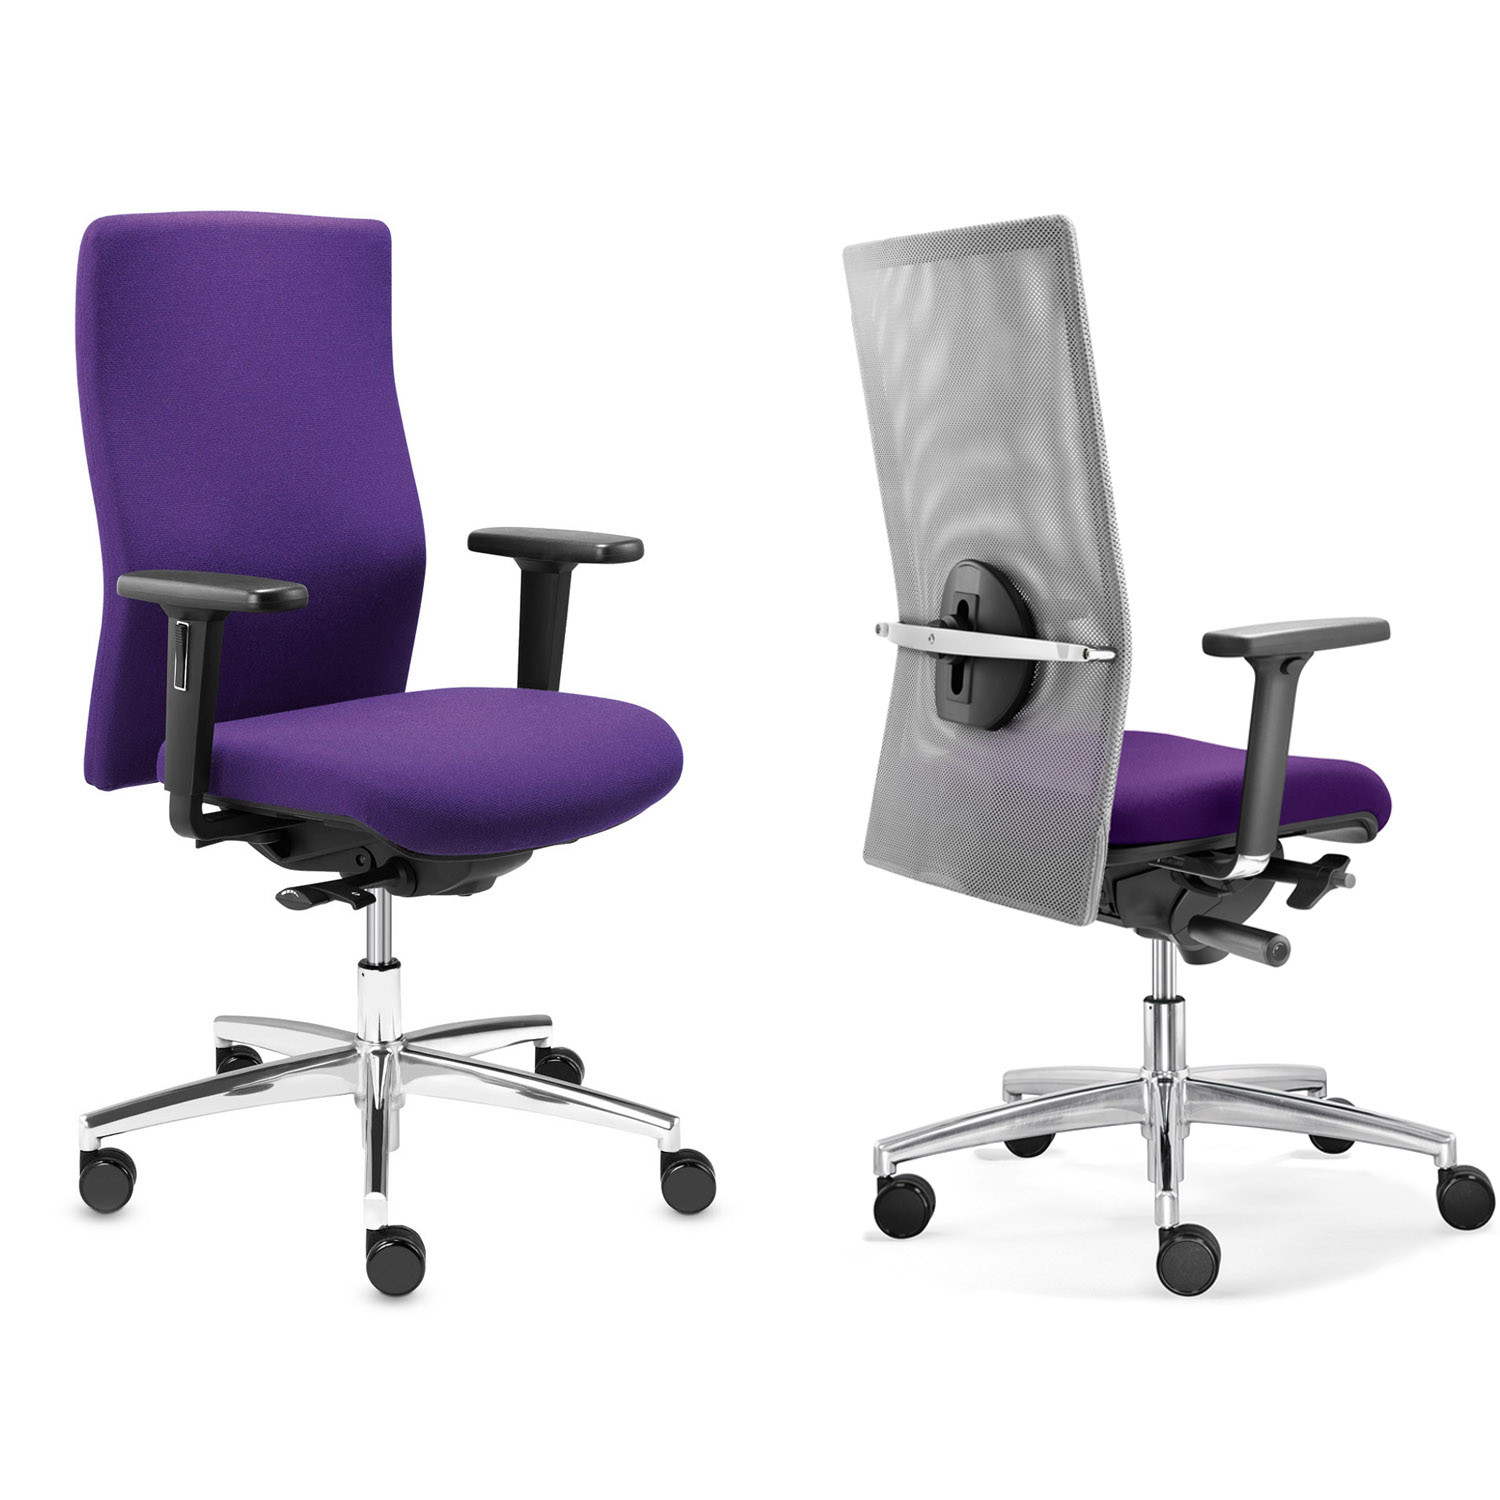 Sim-O Office Chairs - Mesh or Upholstered